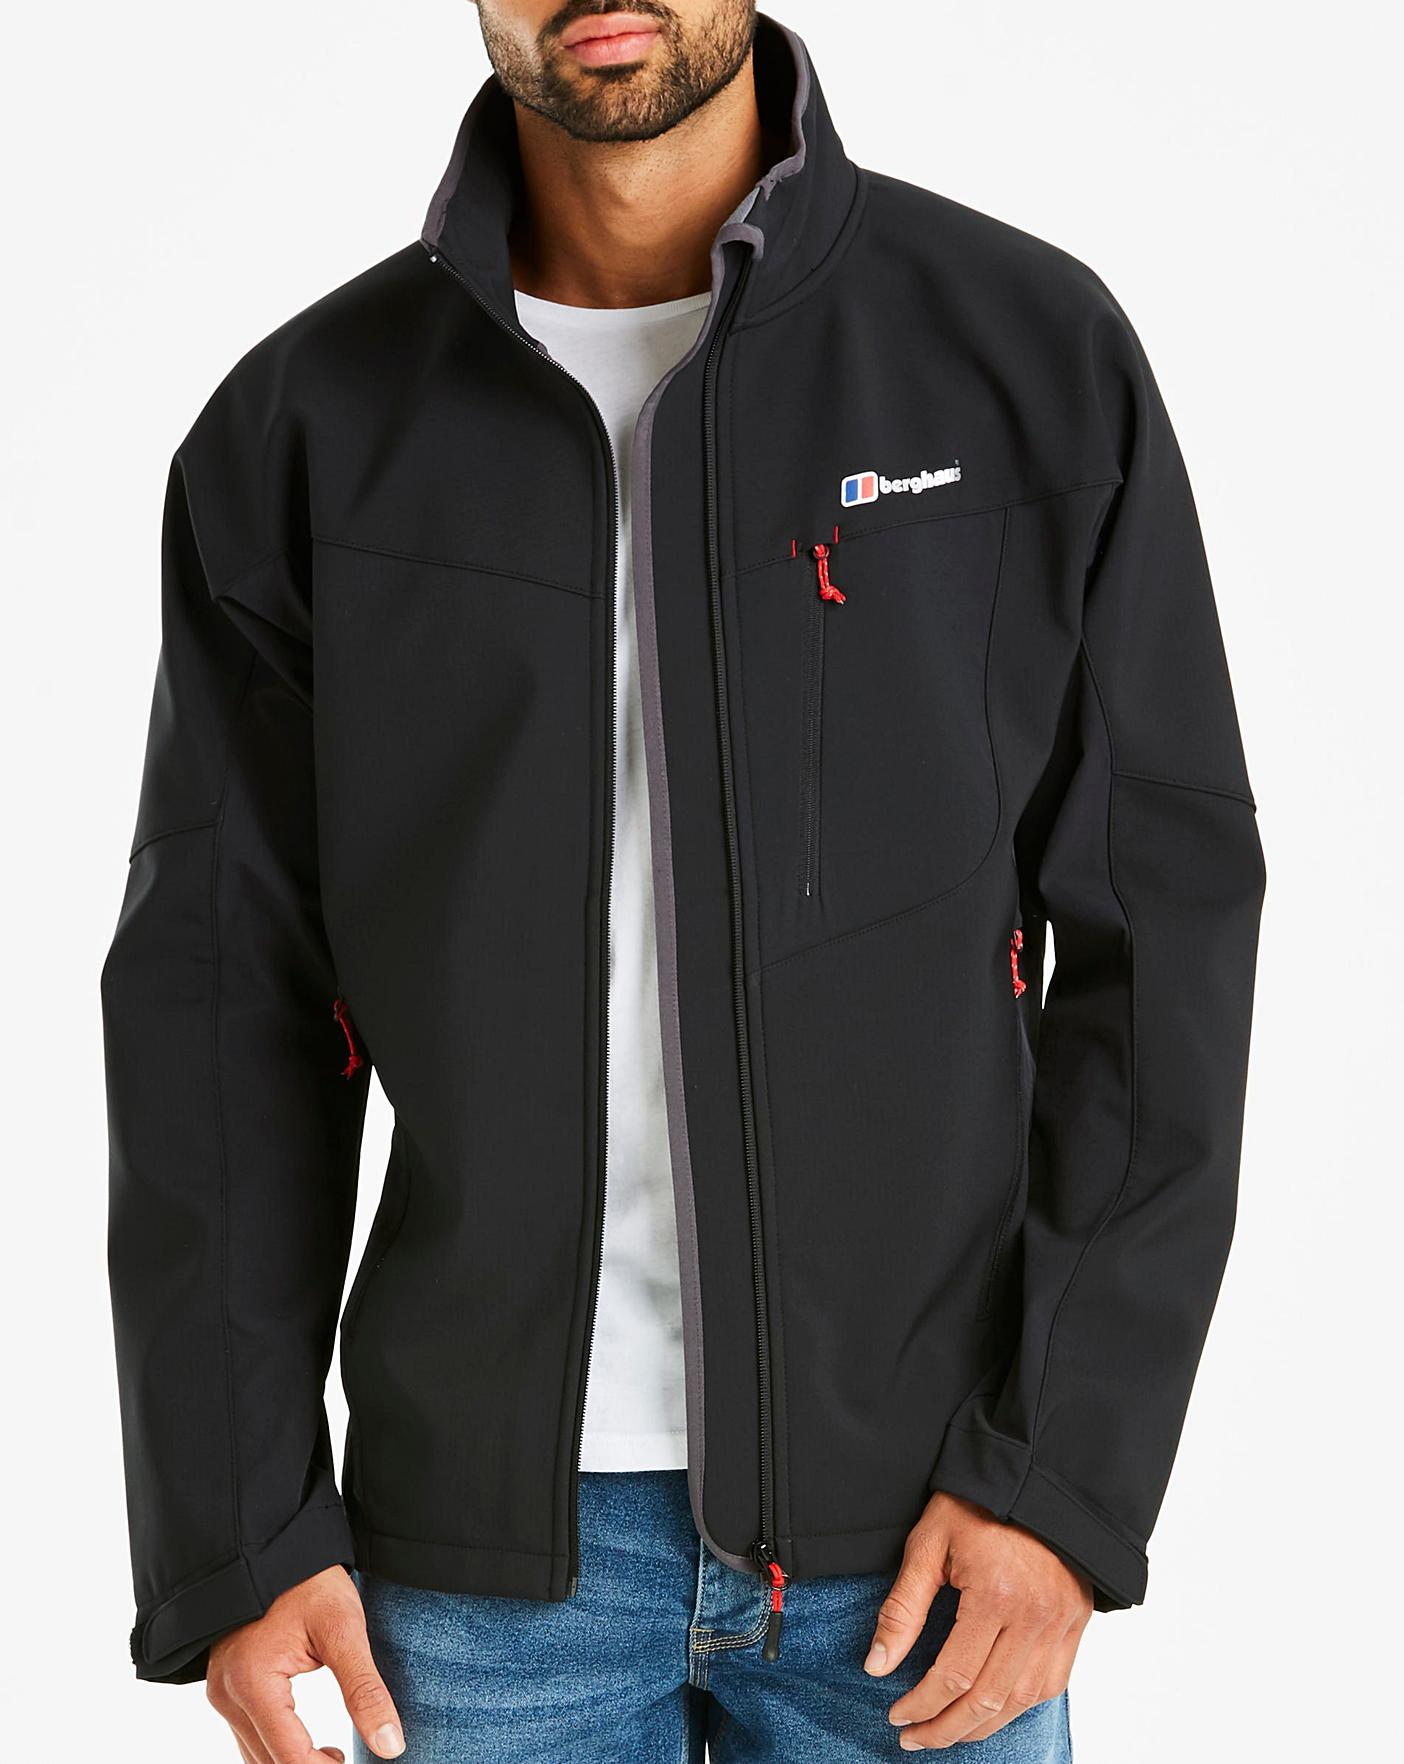 website for discount online retailer new arrivals Berghaus Ghlas Softshell Jacket